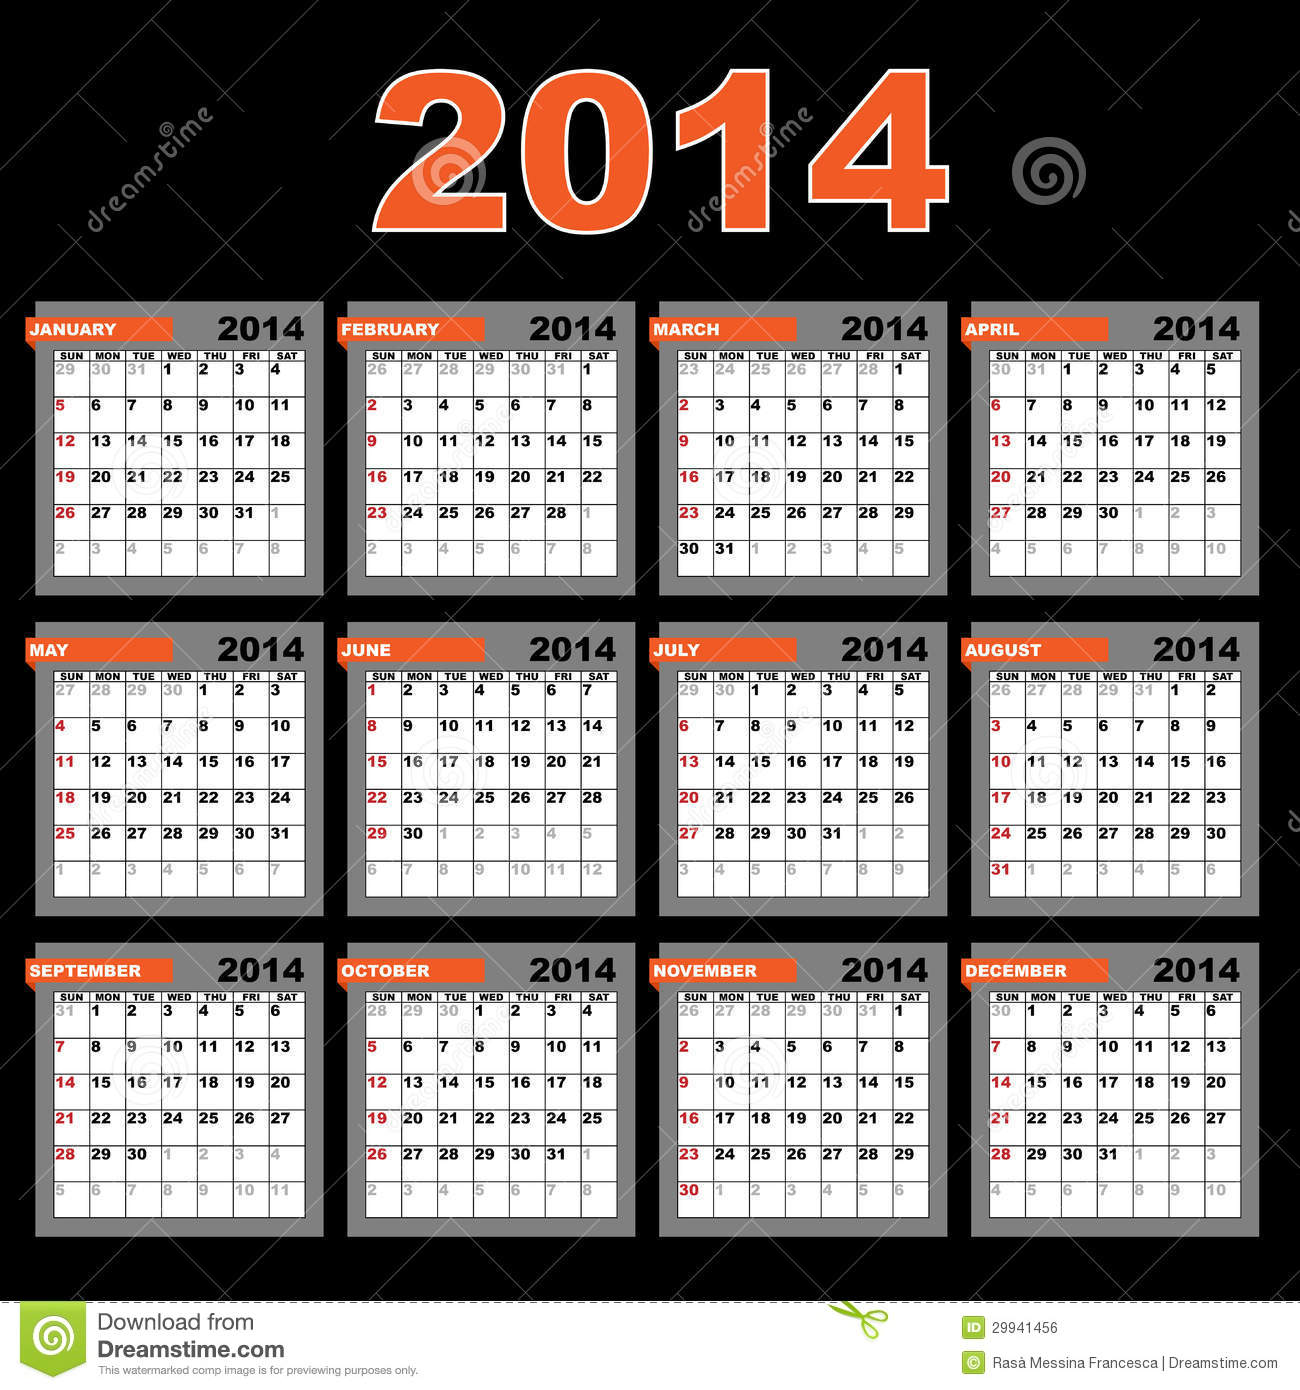 August 2014 Cpo Offers Table Jpg: 2014 Calendar Royalty Free Stock Image